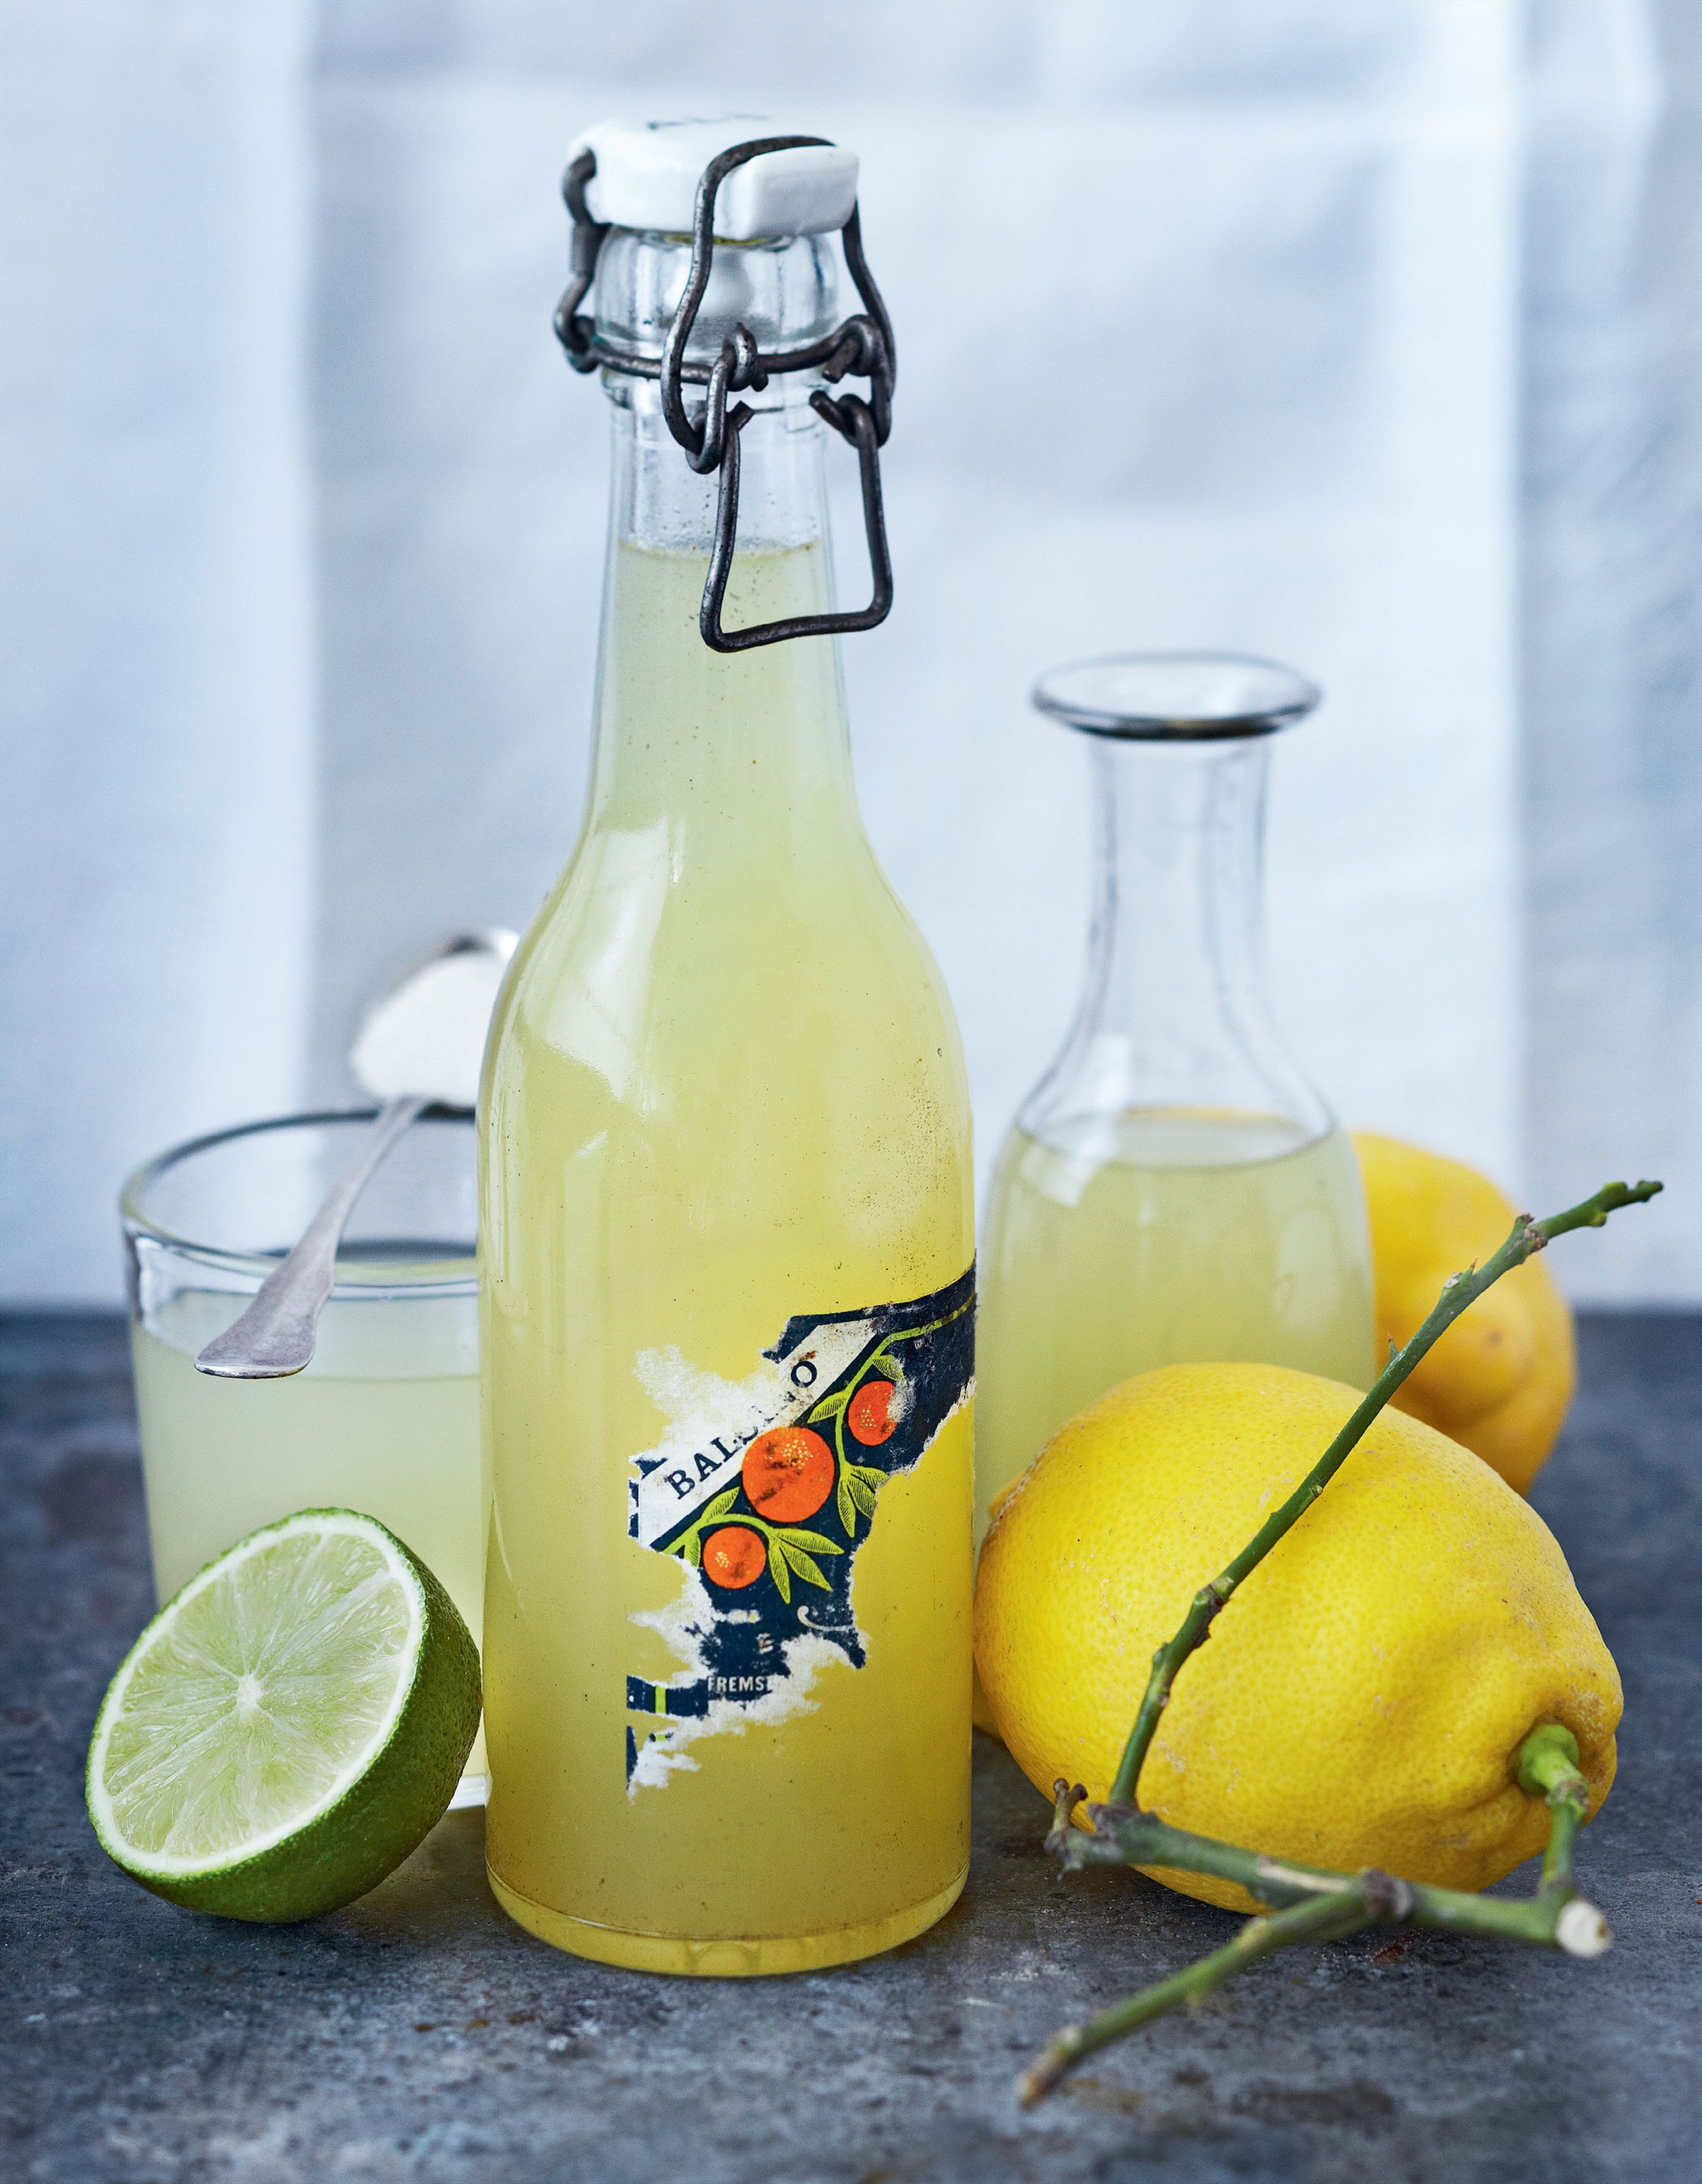 Lemon-lime syrup